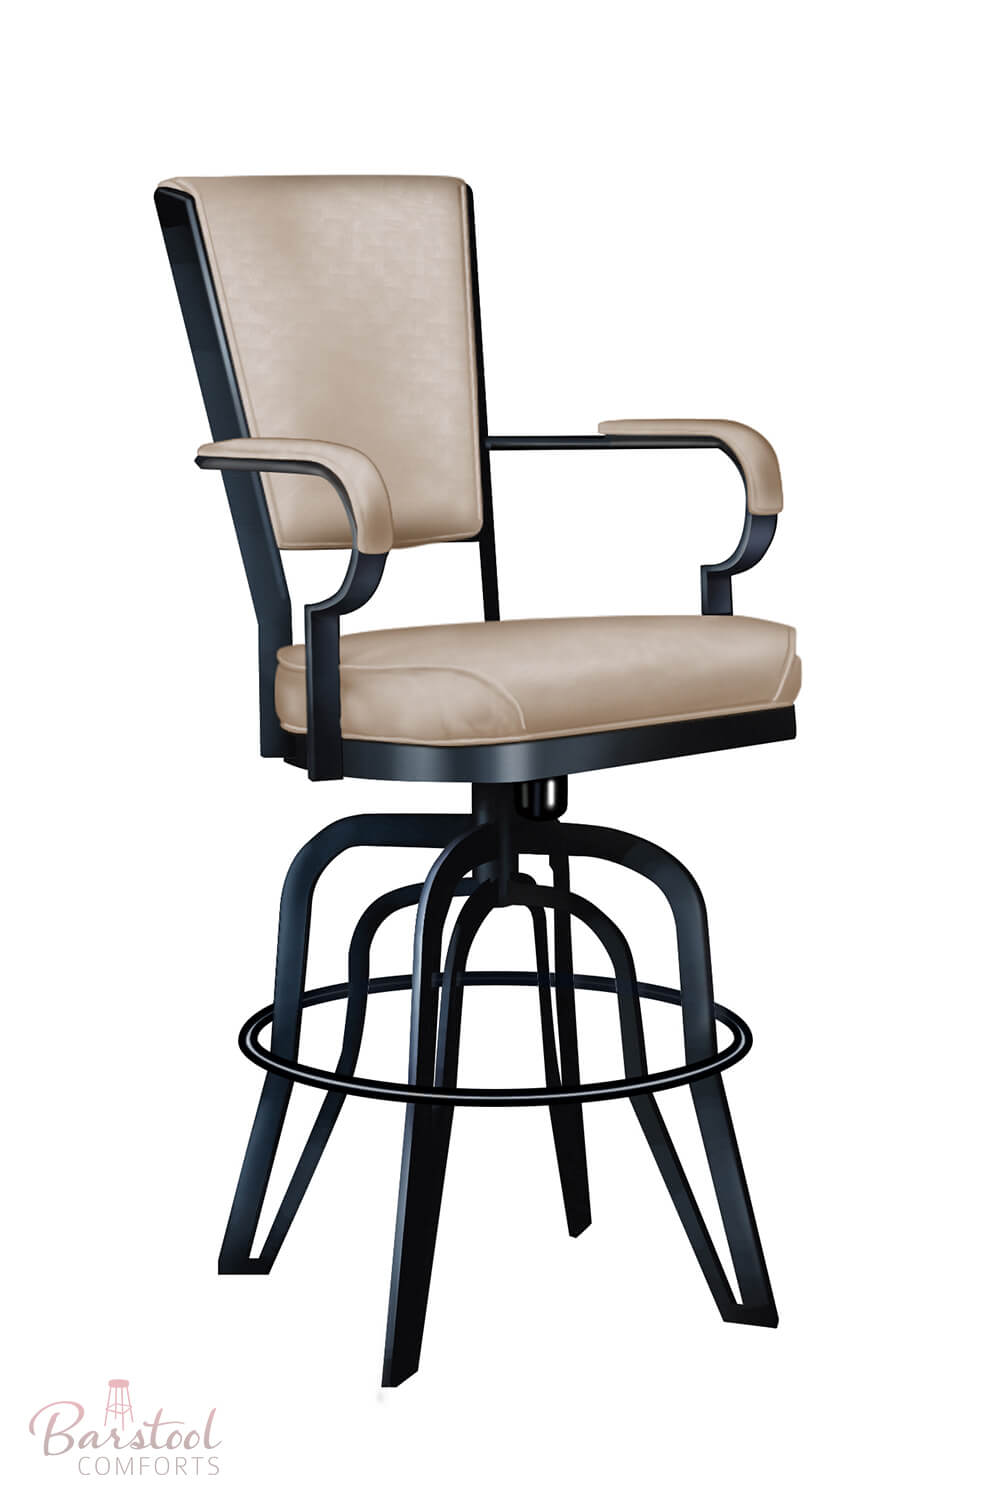 Admirable Lisa Furniture 2545 Rocking Tilt Swivel Bar Stool Uwap Interior Chair Design Uwaporg